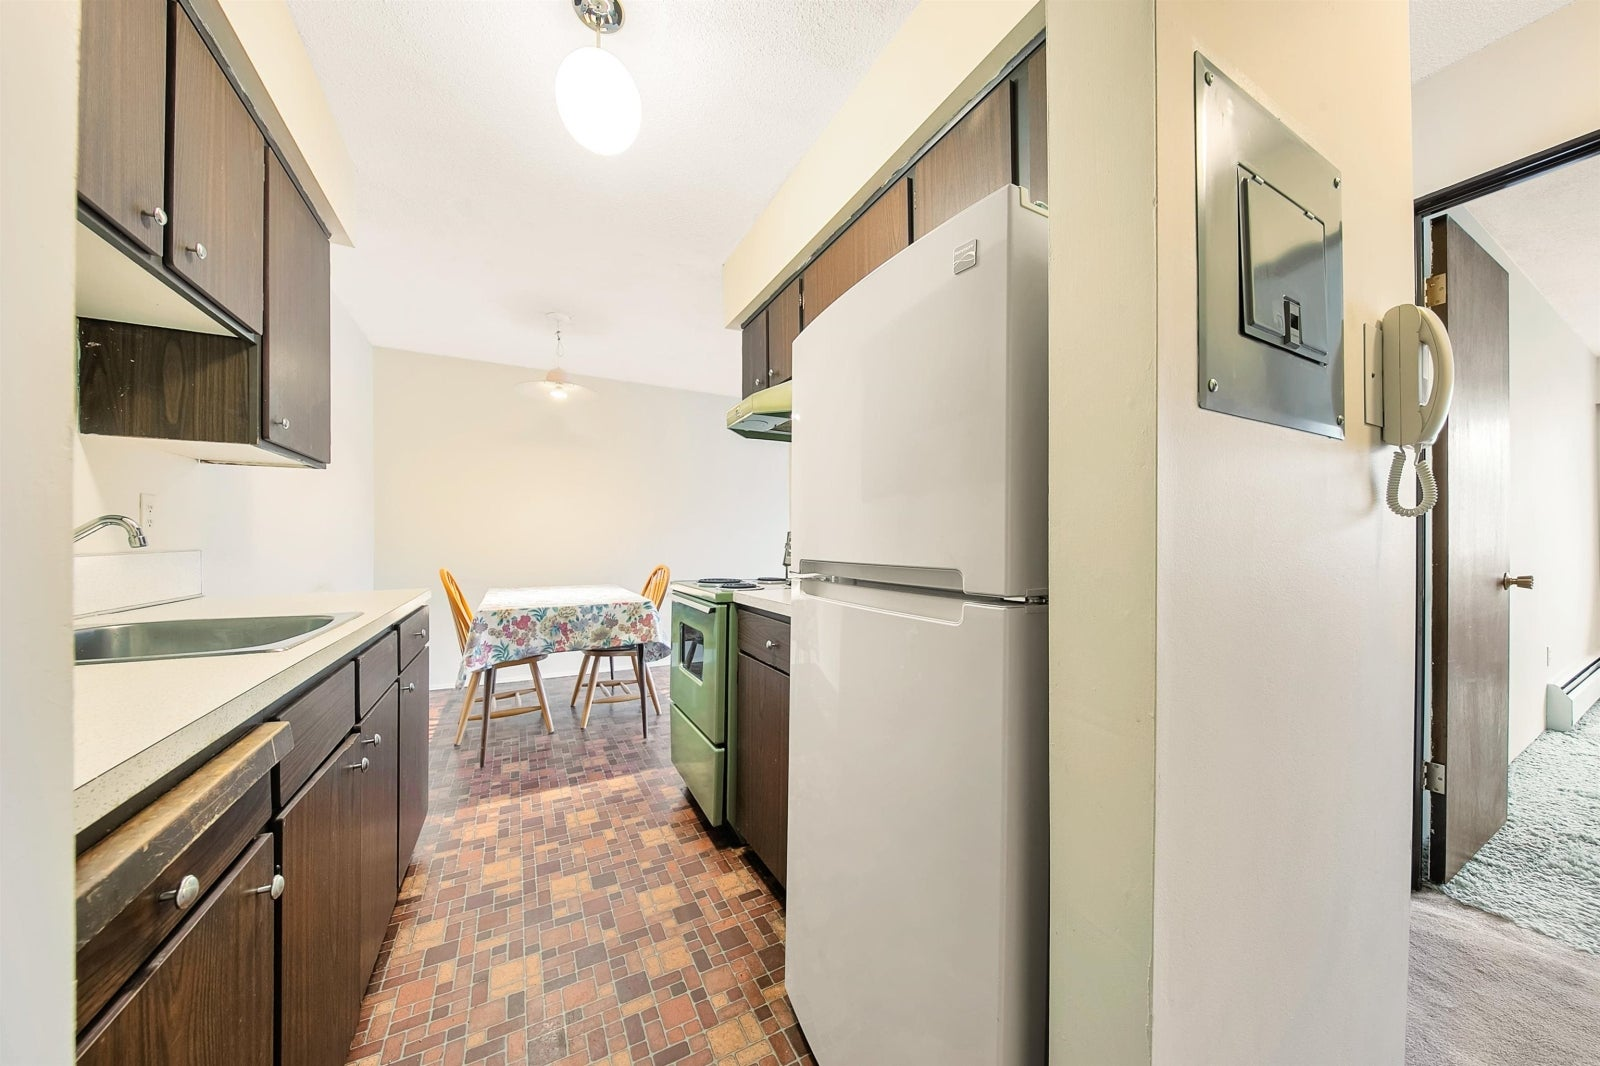 306 1345 CHESTERFIELD AVENUE - Central Lonsdale Apartment/Condo for sale, 1 Bedroom (R2622121) #2